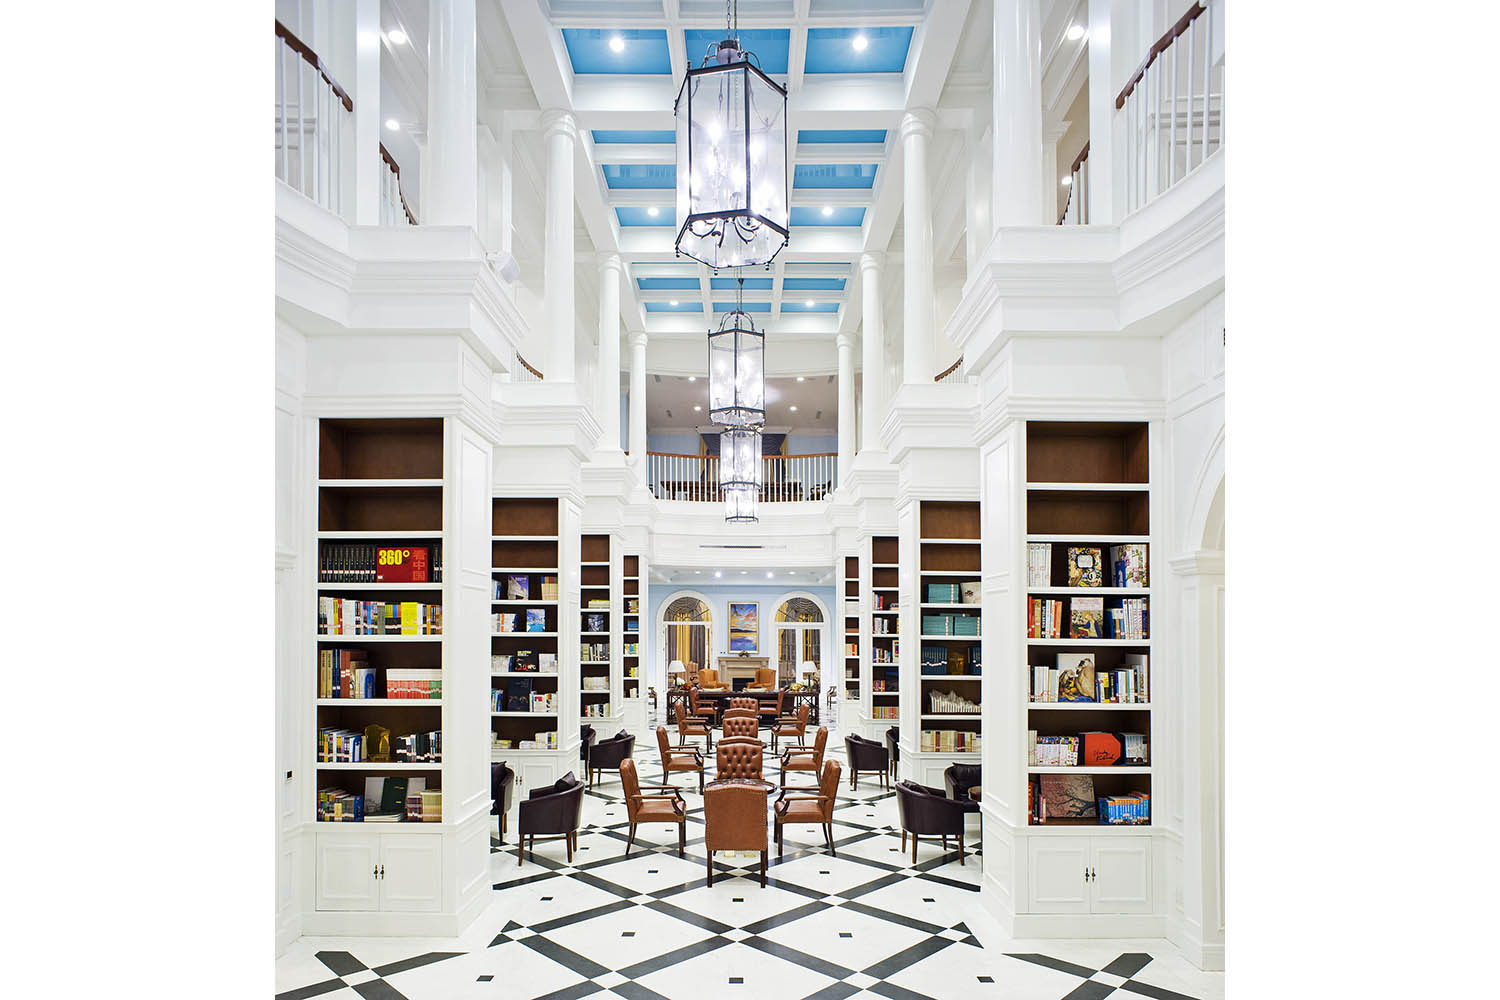 LIbrary_1F_Vertical view_small.jpg